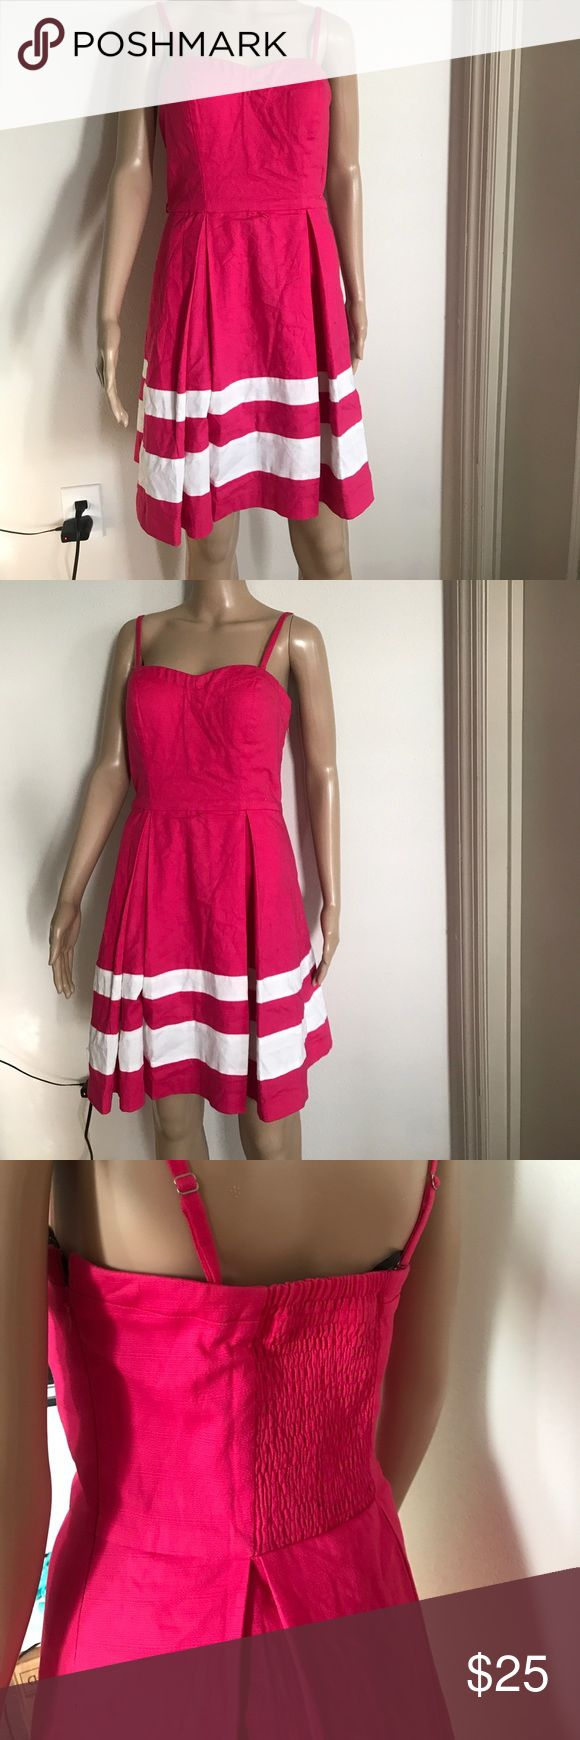 Guess dress size 8 Brand new guess dress size 8.removable straps side zipper elastic back padded bra Guess Dresses Midi